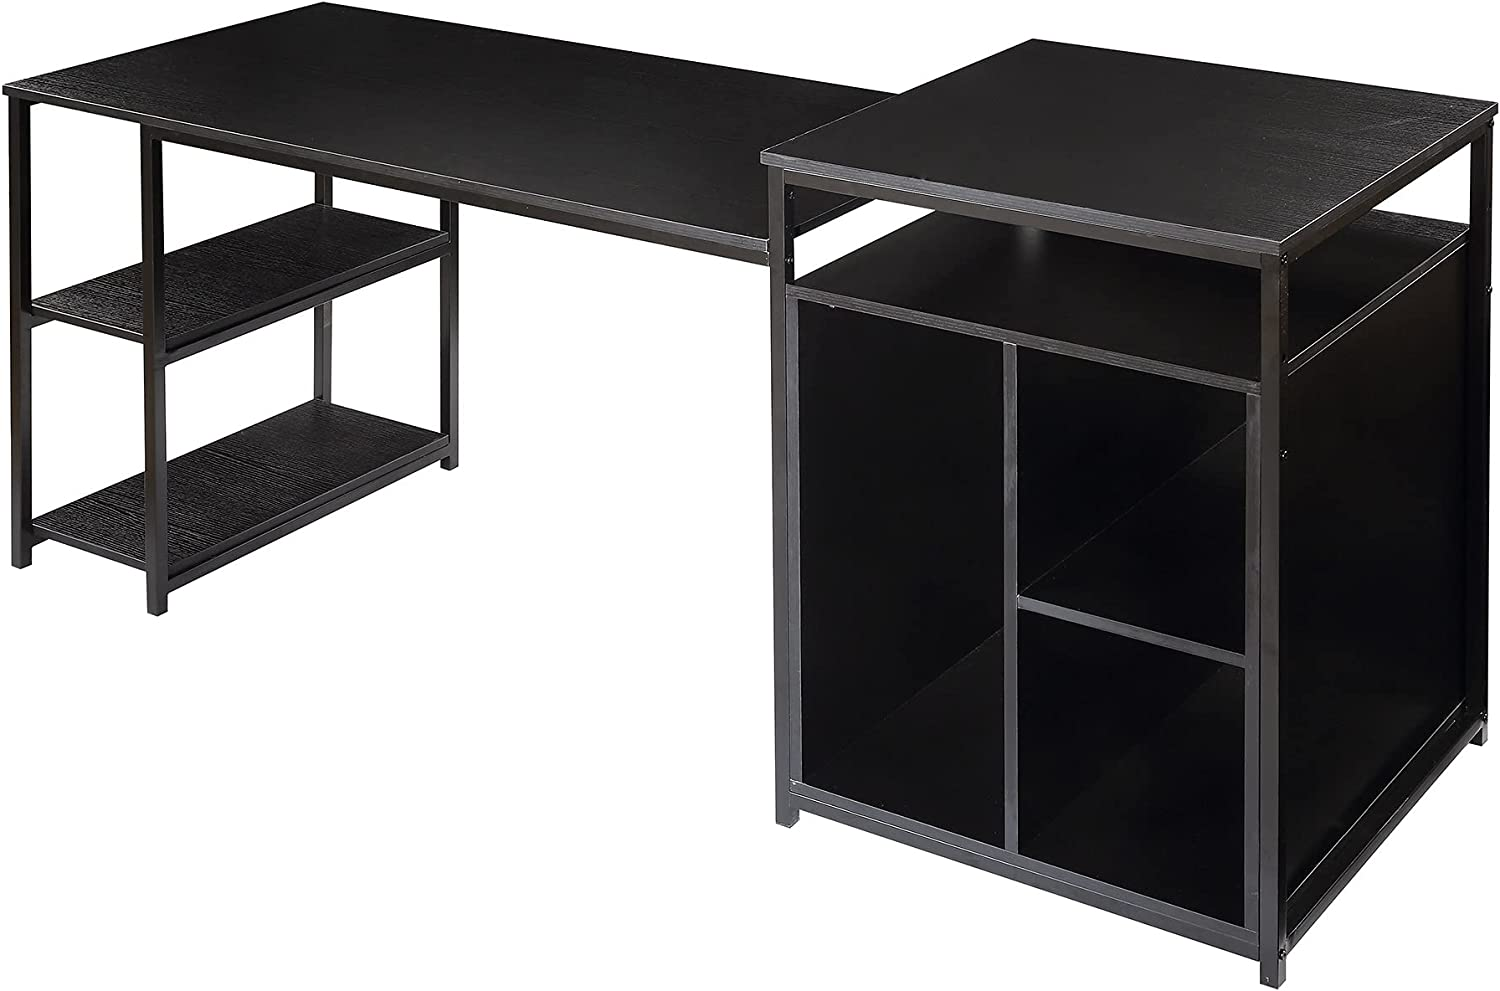 Bombing free shipping GXXZ Breathable Home Office Computer Great interest Storage with Stor CPU Shelf